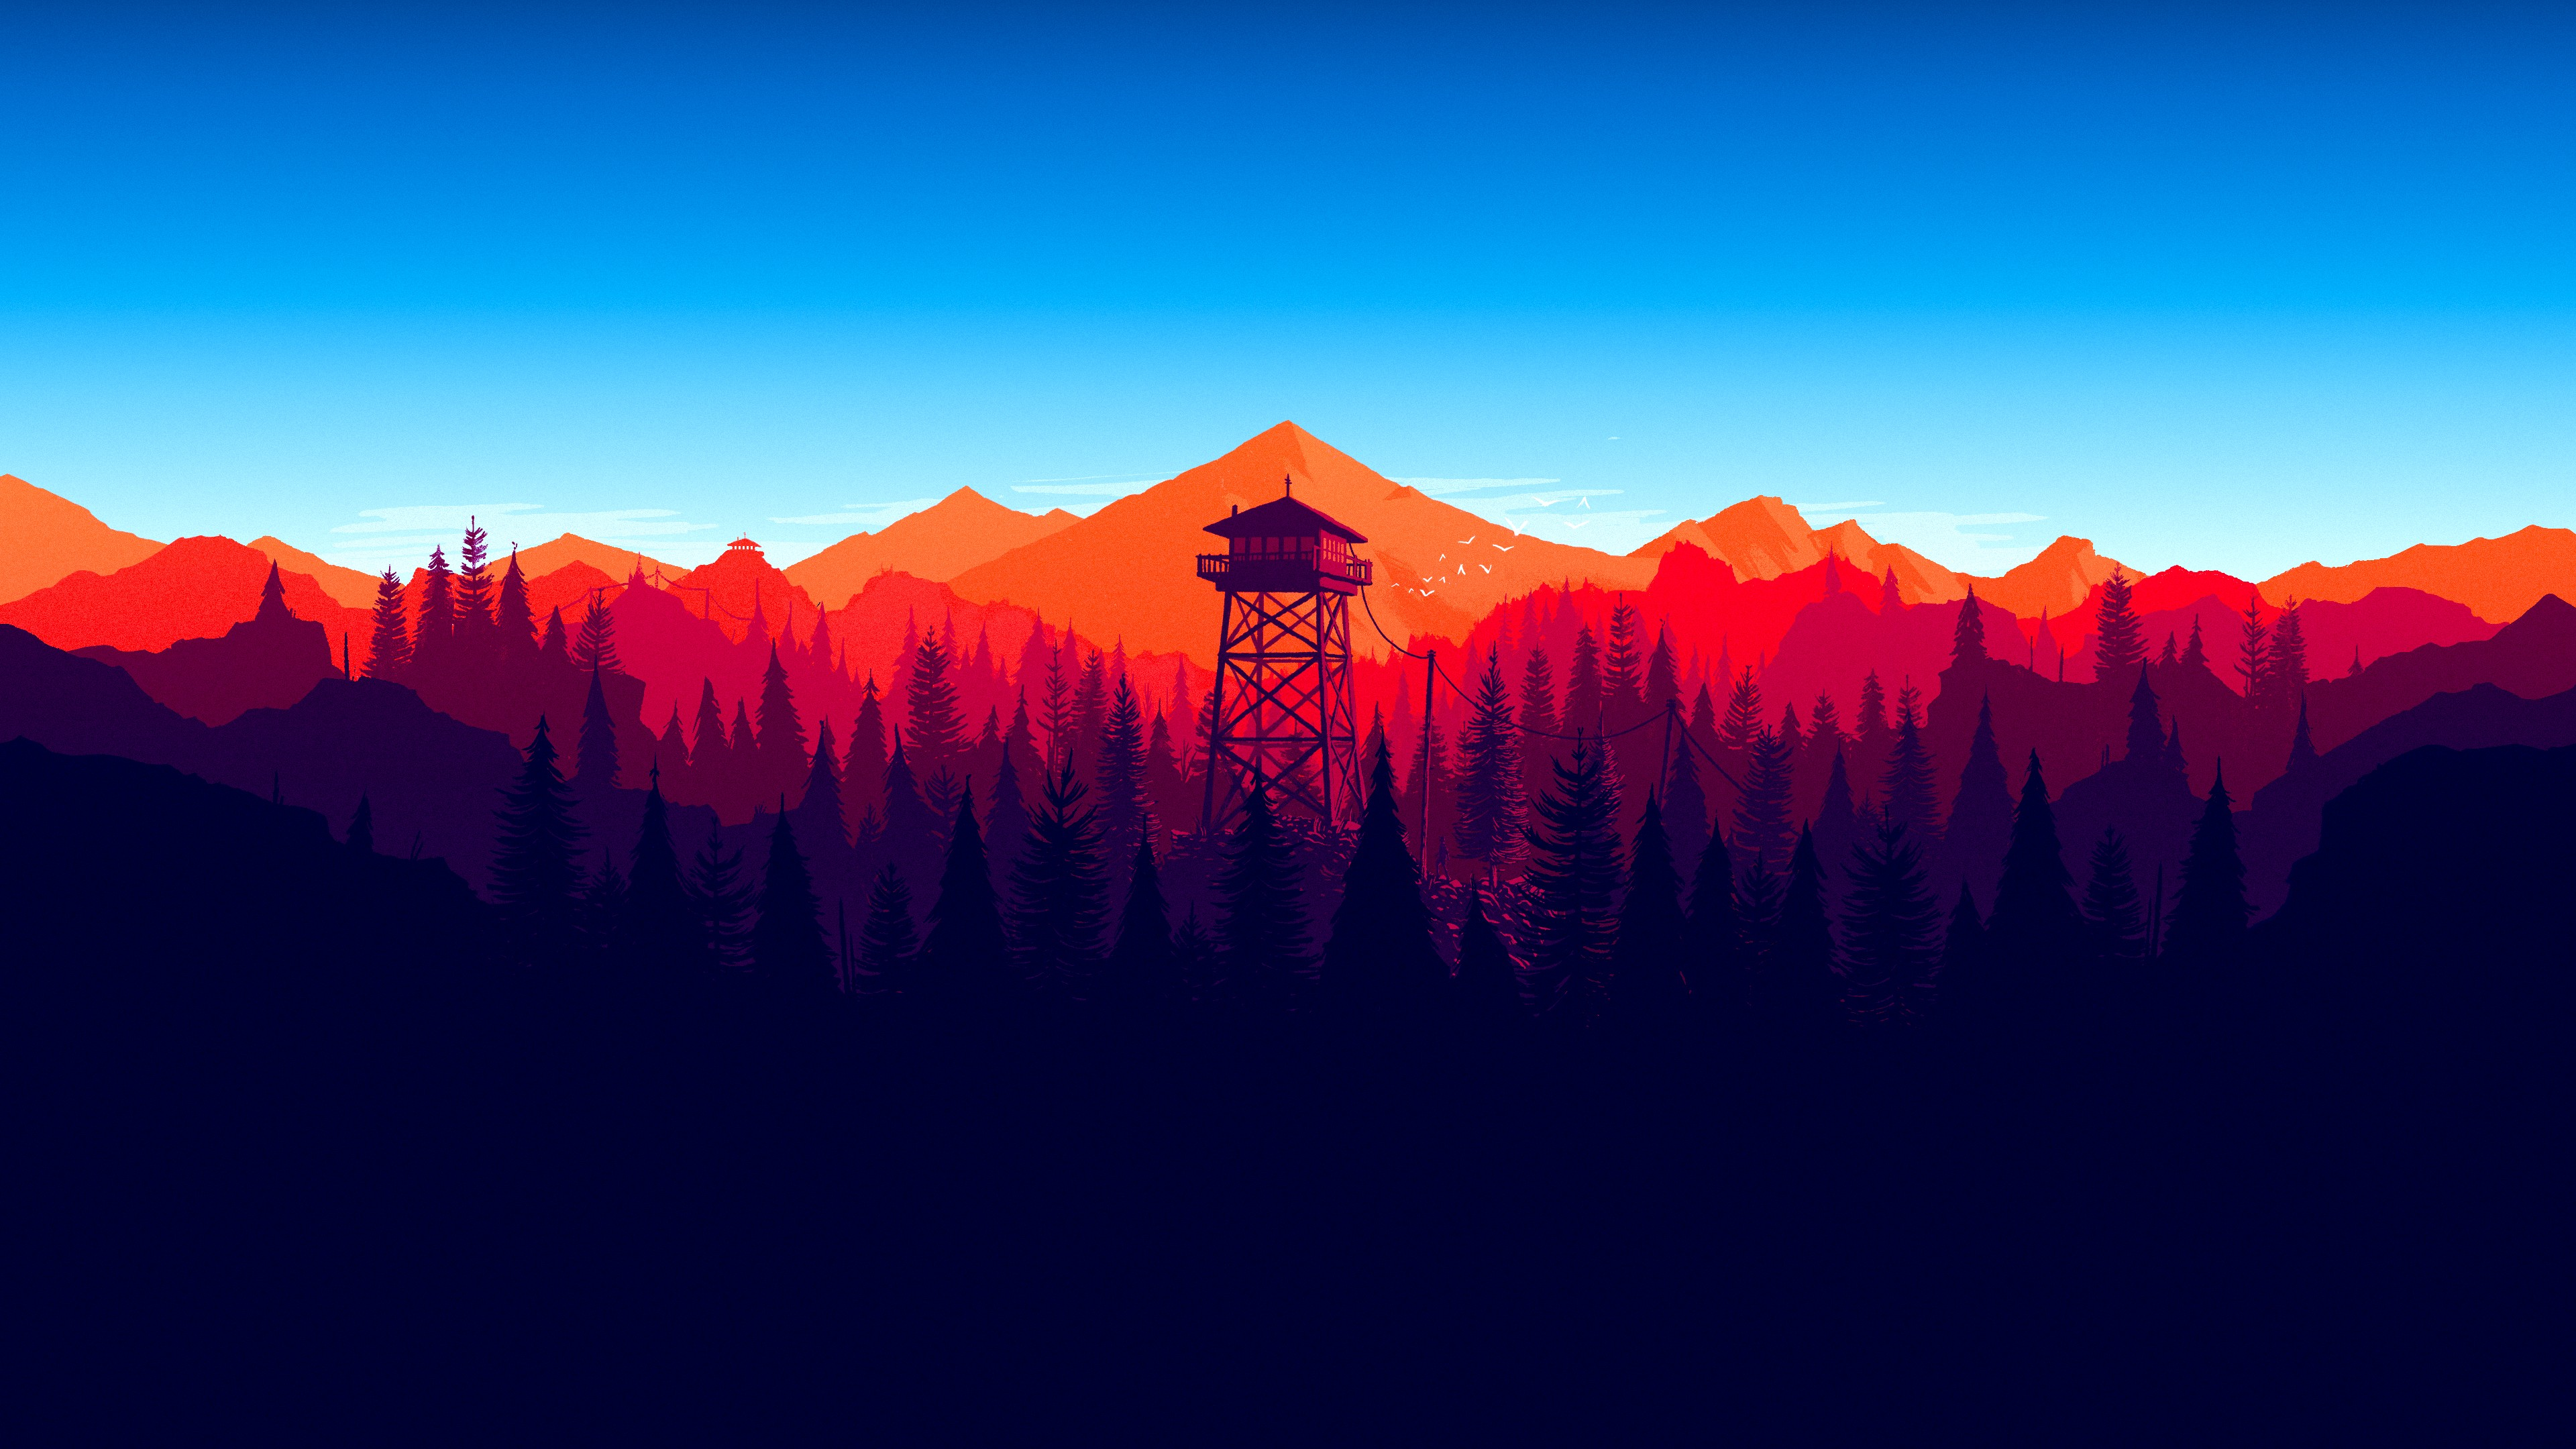 Firewatch Forest Mountains Minimalism 4k Hd Games 4k